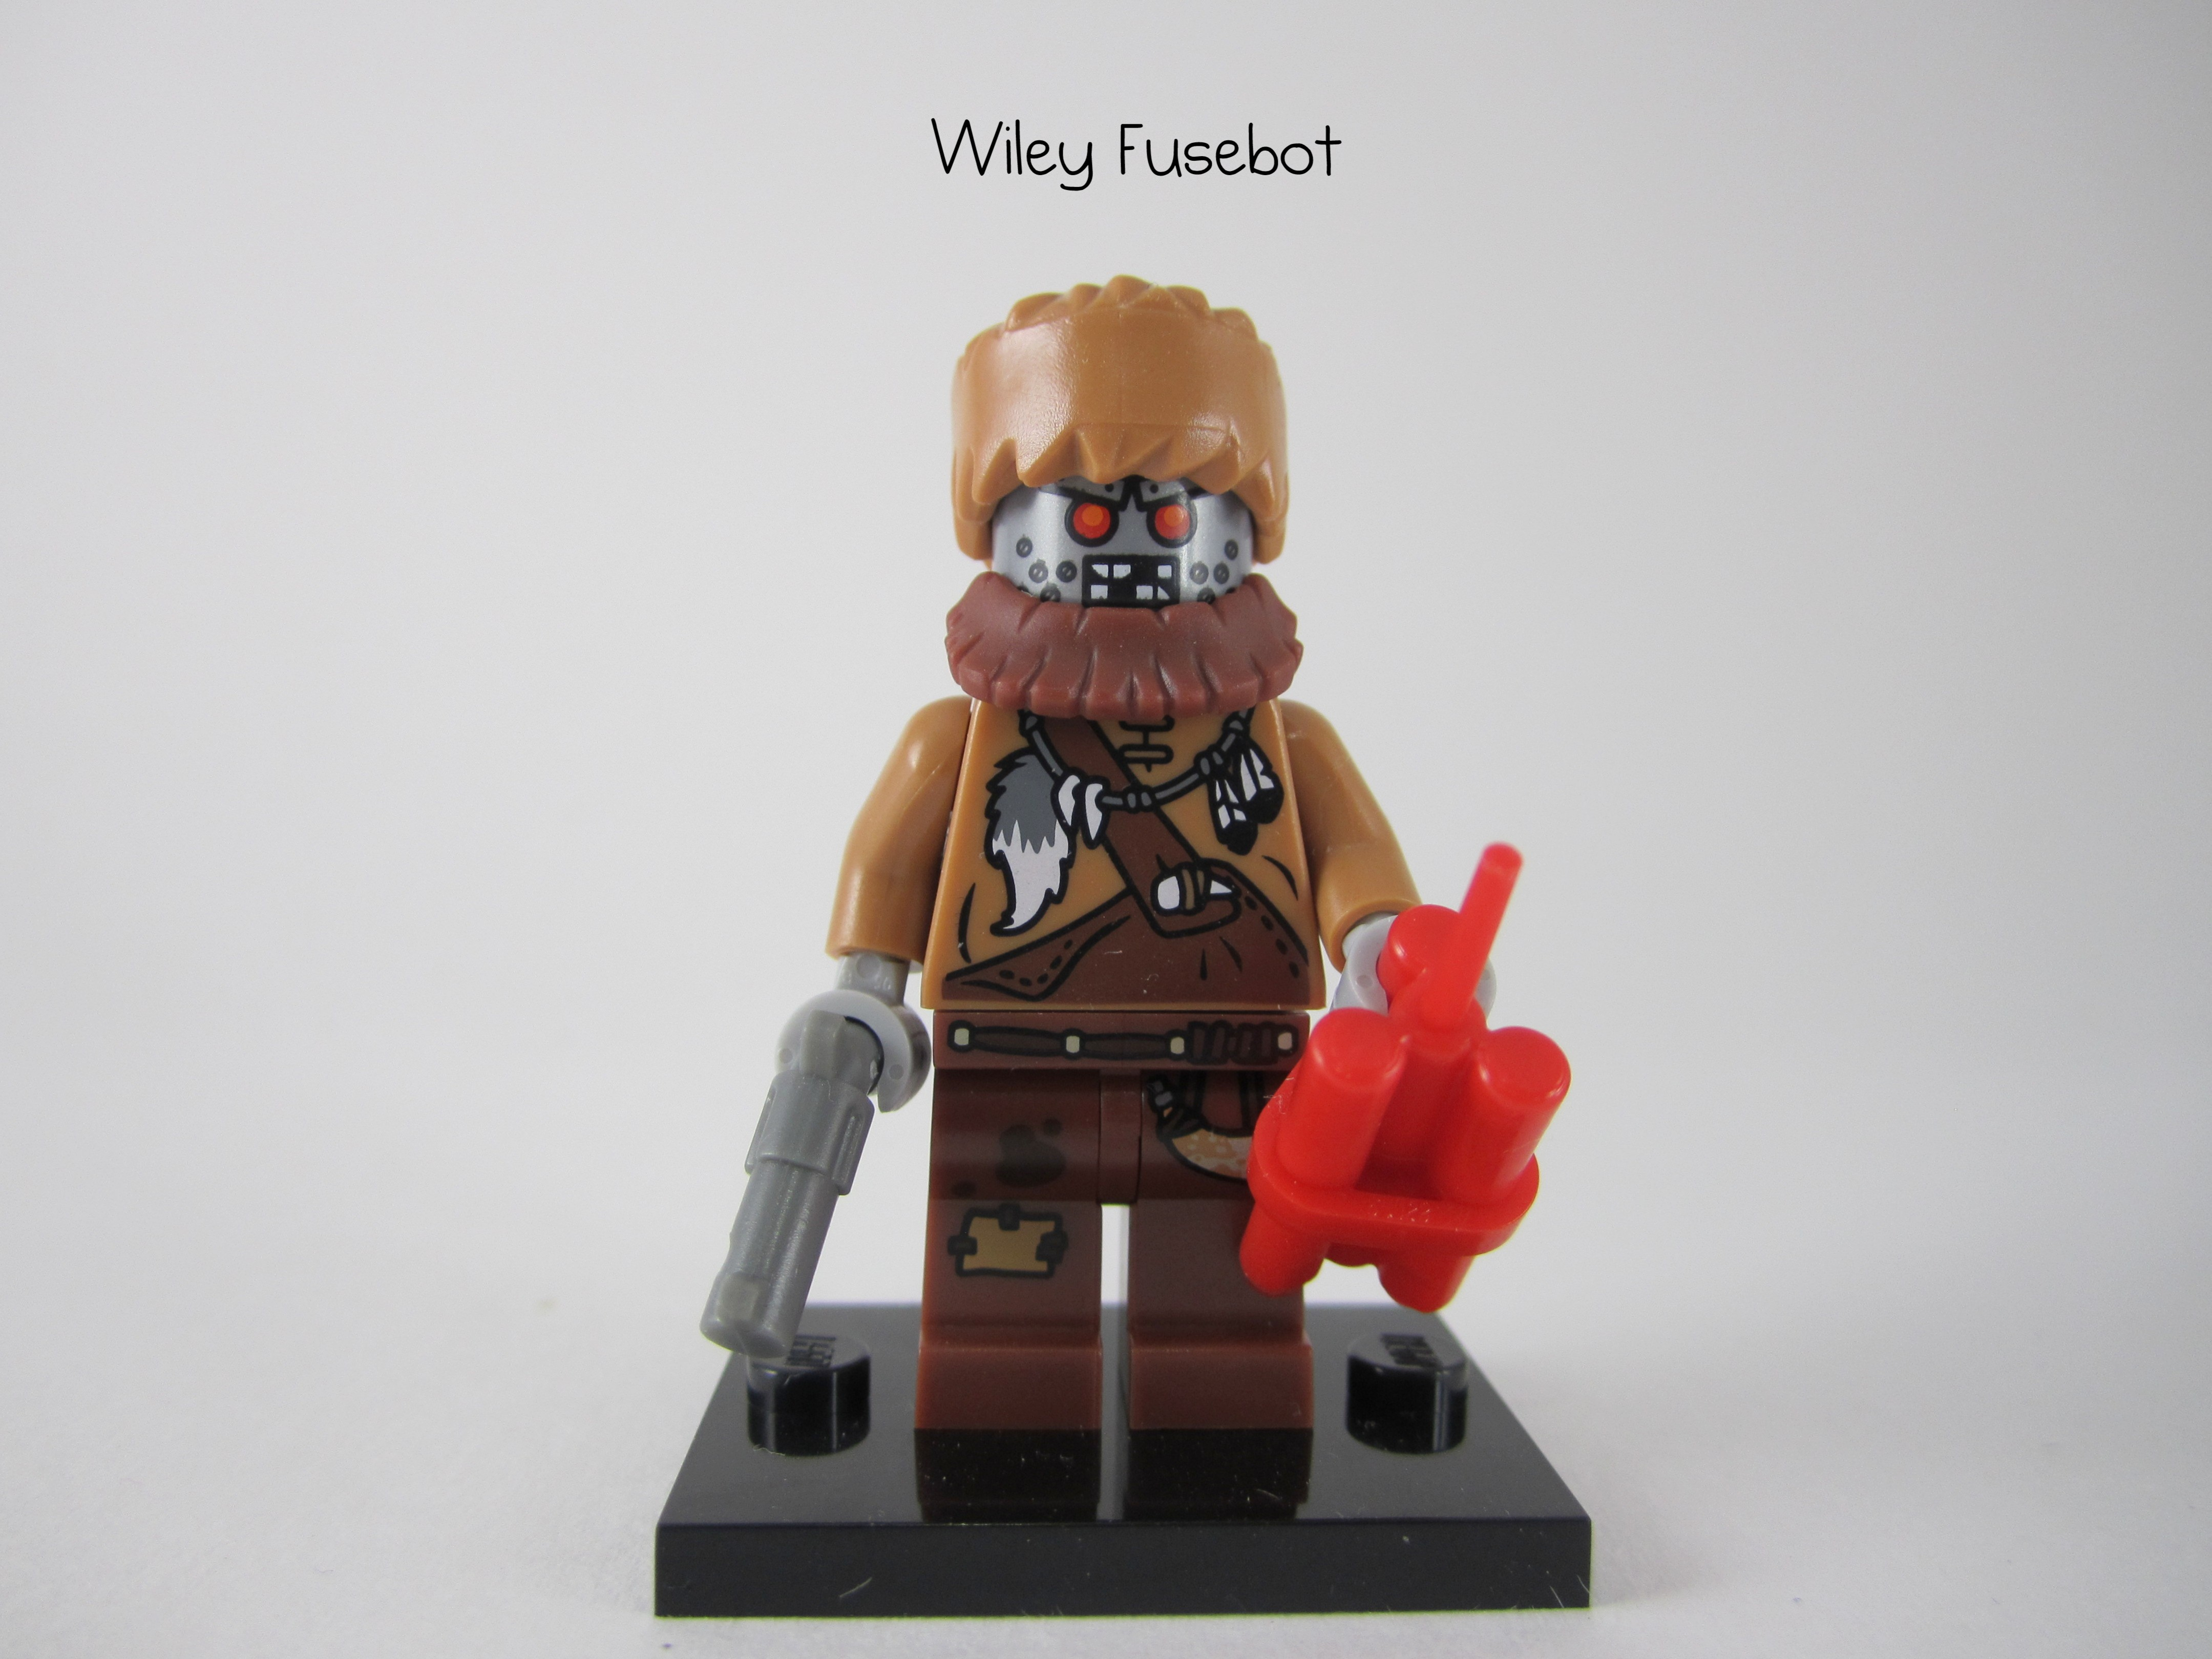 Wiley Fusebot minifig